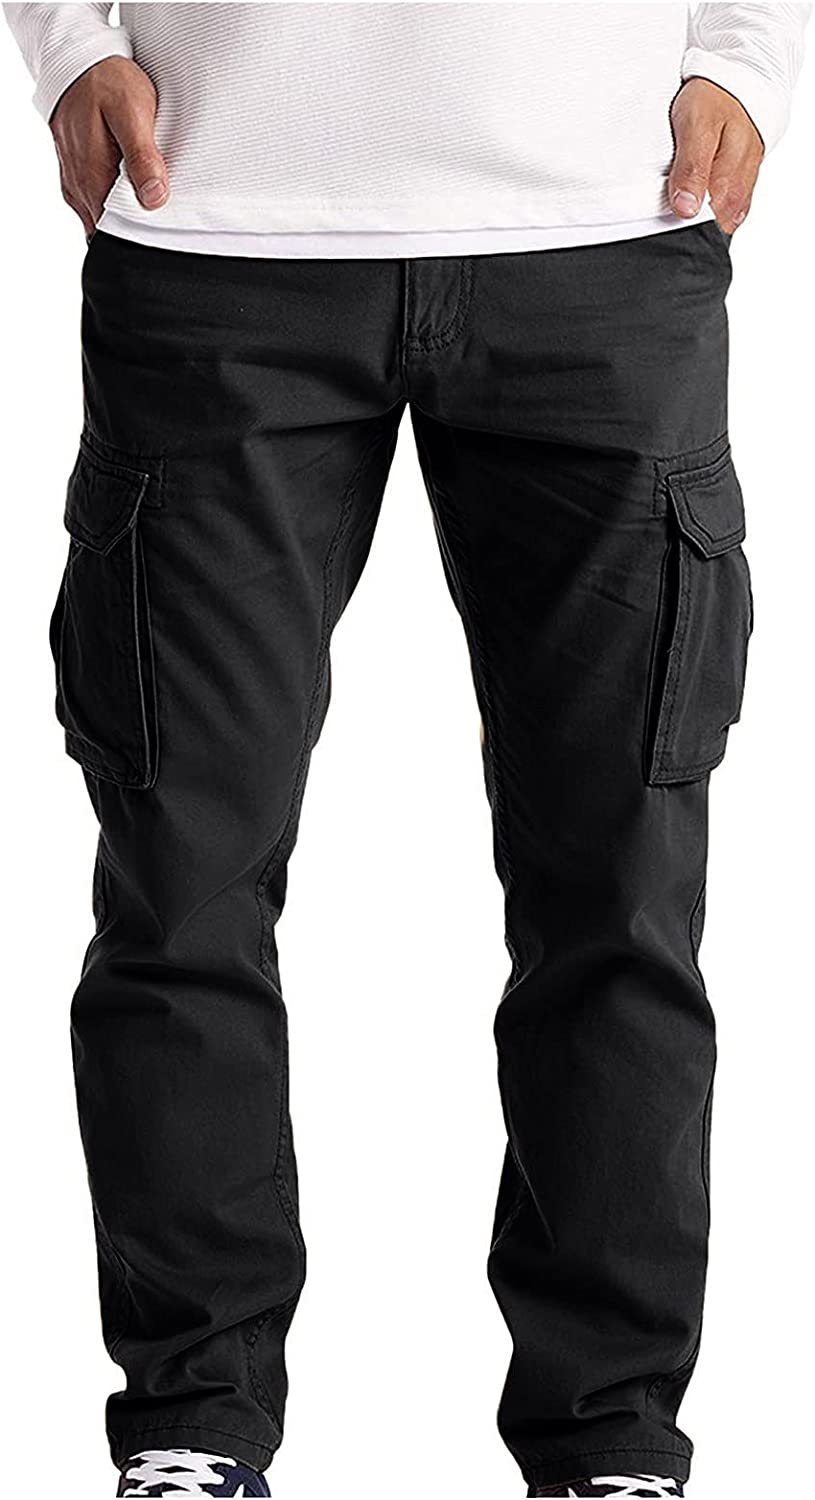 Mens Cargo Pants with Pockets Relaxed Fit, Hiking Pants for Men Zip Off Lightweight Quick Dry Breathable Pants